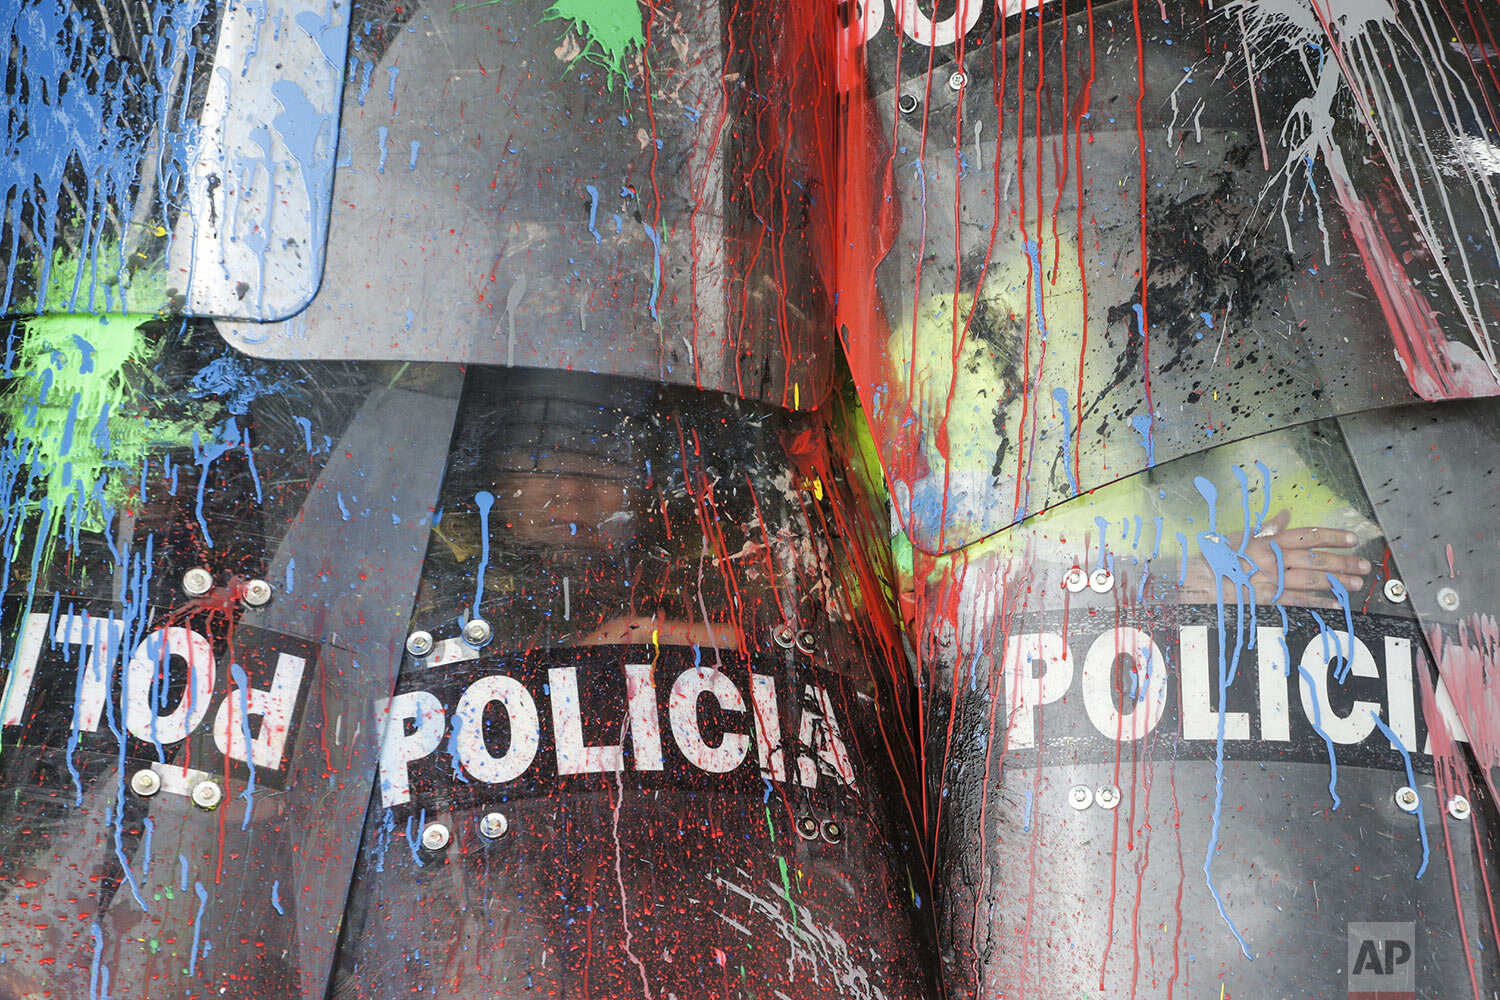 The shields of National Police are covered in paint thrown by protesting students in Bogota, Colombia, Thursday, Oct. 10, 2019. Students are demanding more government resources for education and higher quality universities. (AP Photo/Ivan Valencia)